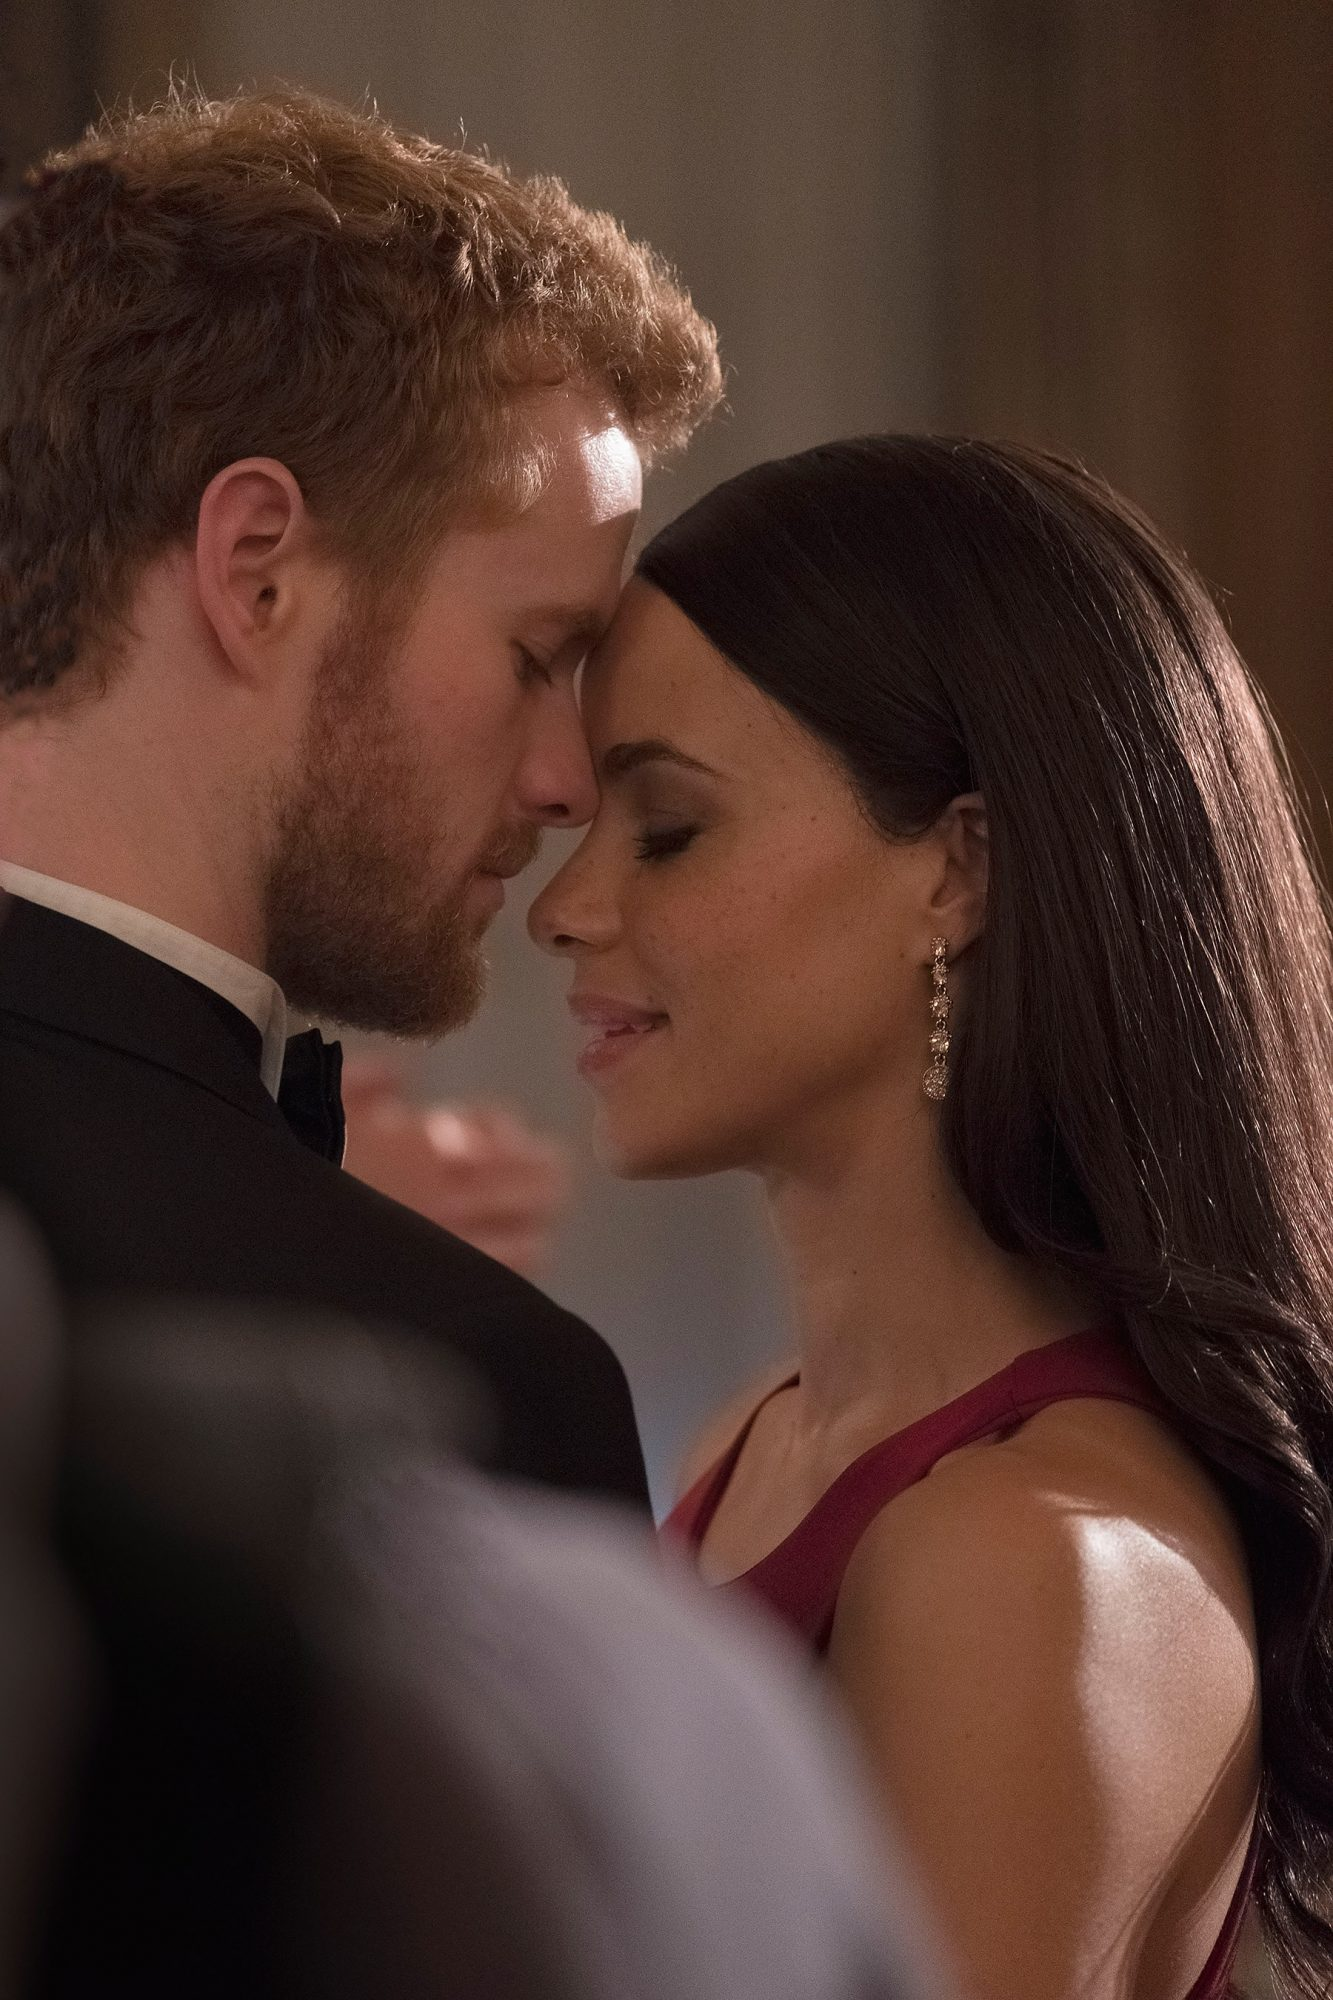 Harry and Meghan Lifetime MovieCR: Michael Courtney